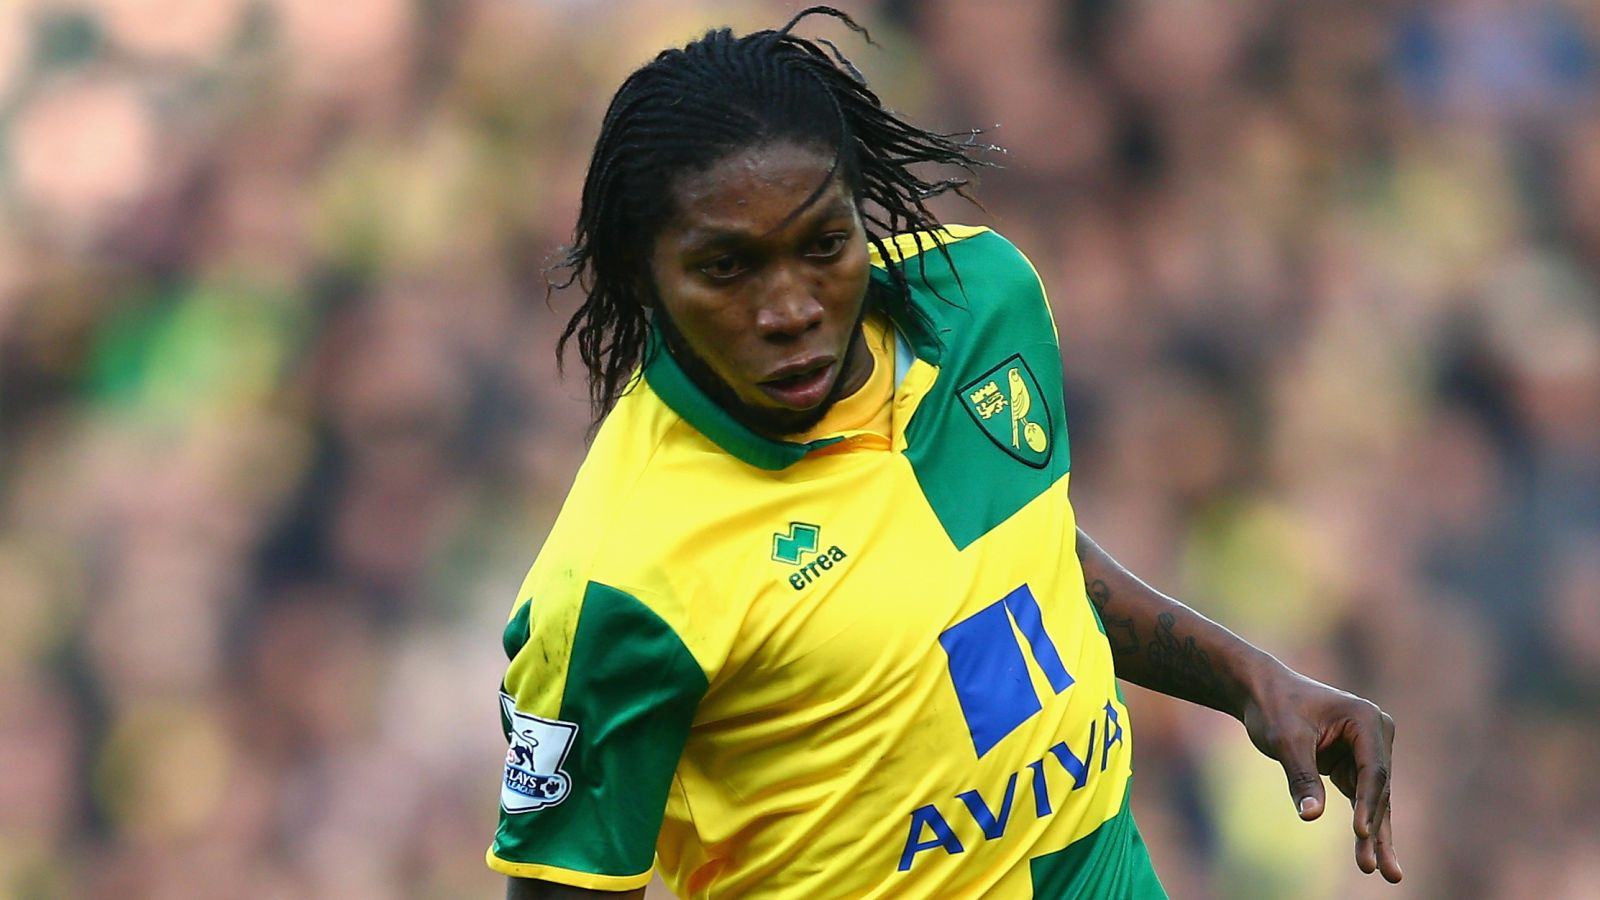 EPL striker Mbokani unhurt after being caught up in Brussels attacks